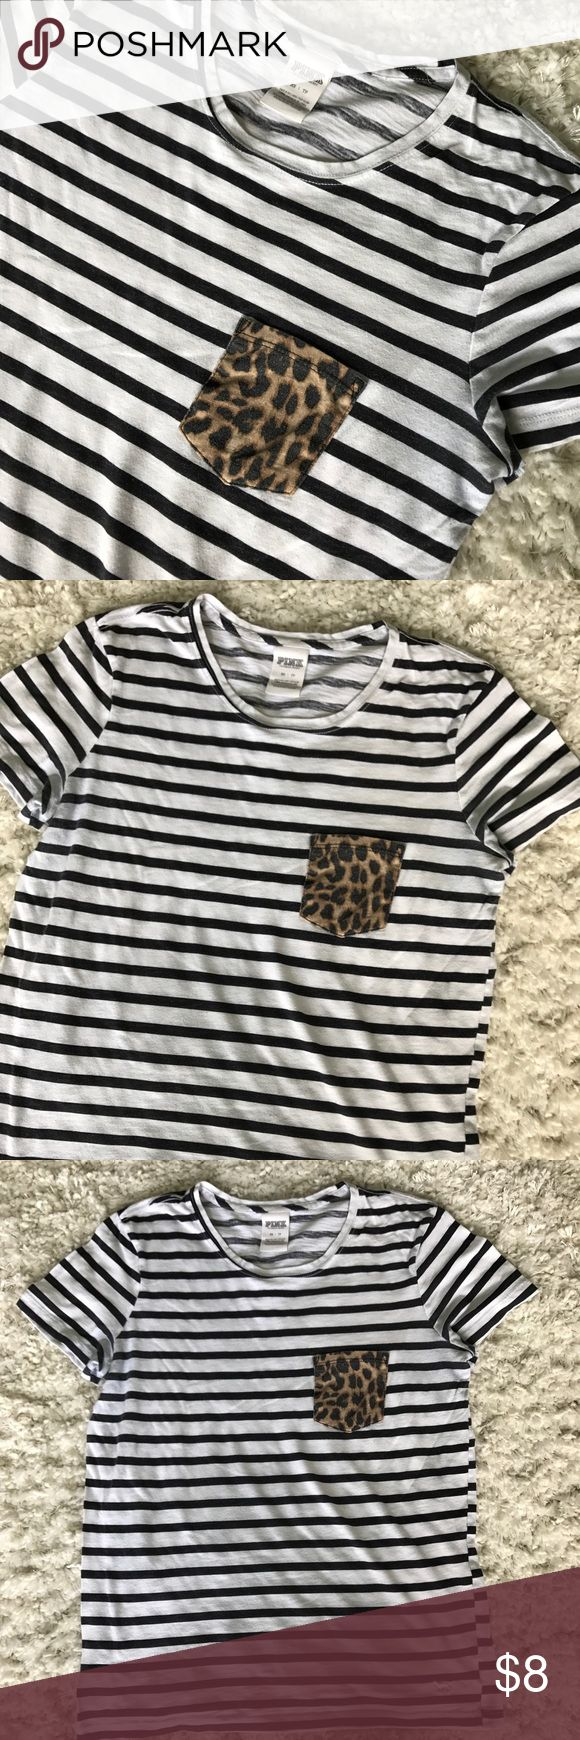 Pink VS Striped/Cheetah Print Shirt Size XSmall, colors are black and white  stripes with cheetah print pocket, no rips, no stains, color faded from normal wash/wear PINK Victoria's Secret Tops Tees - Short Sleeve